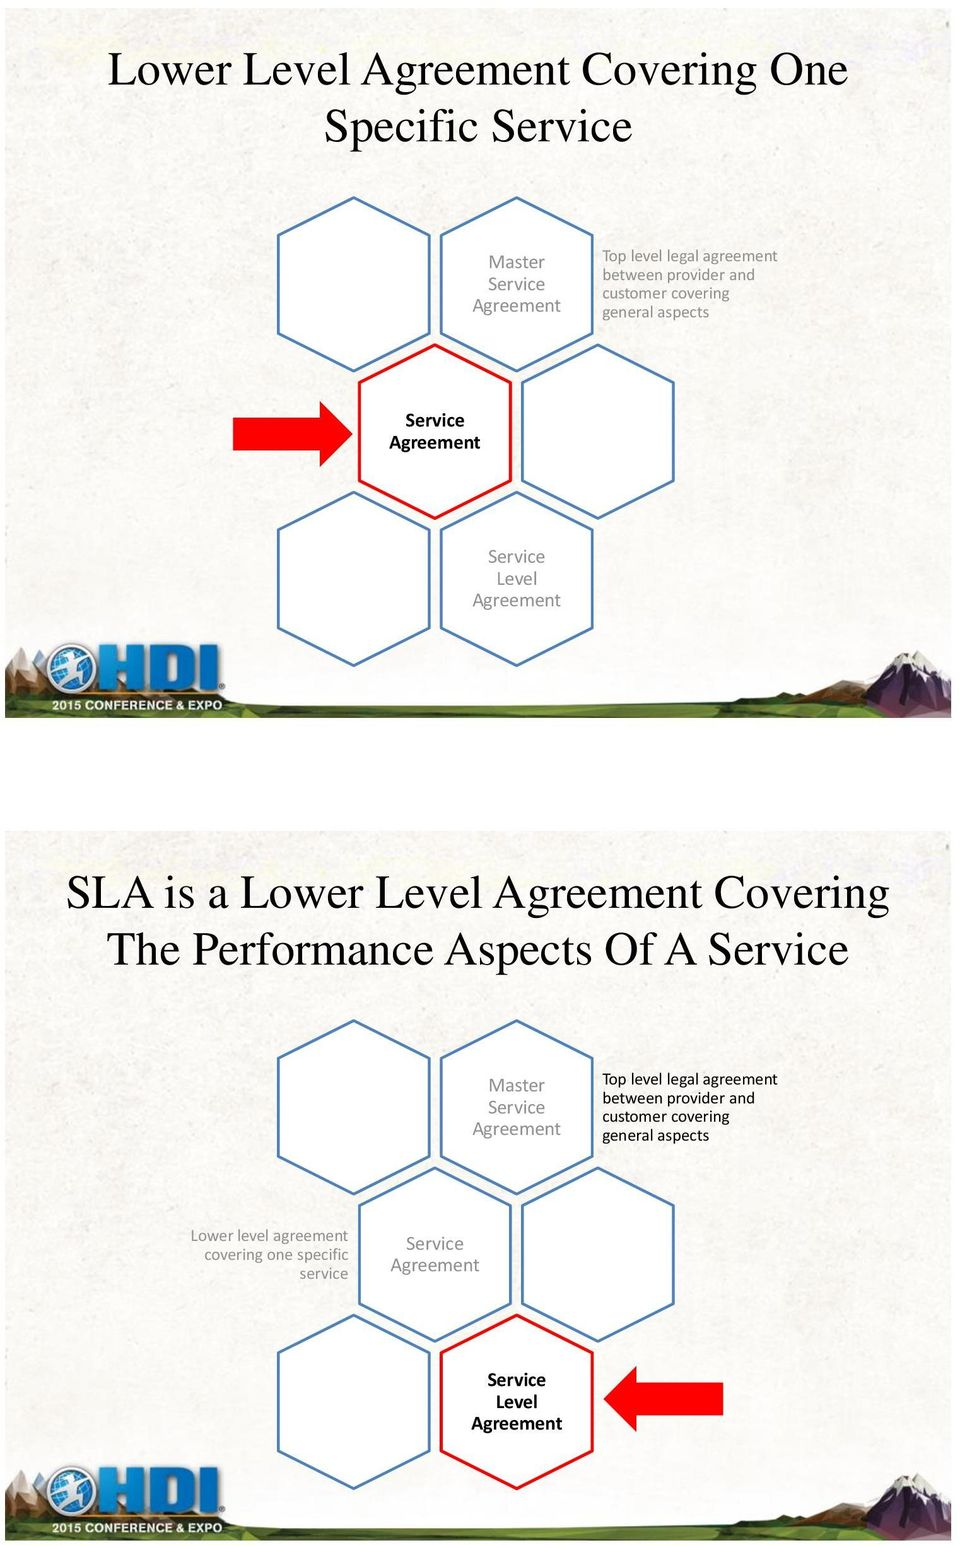 Agreement Covering The Performance Aspects Of A Service Master Service Agreement Top level legal agreement between